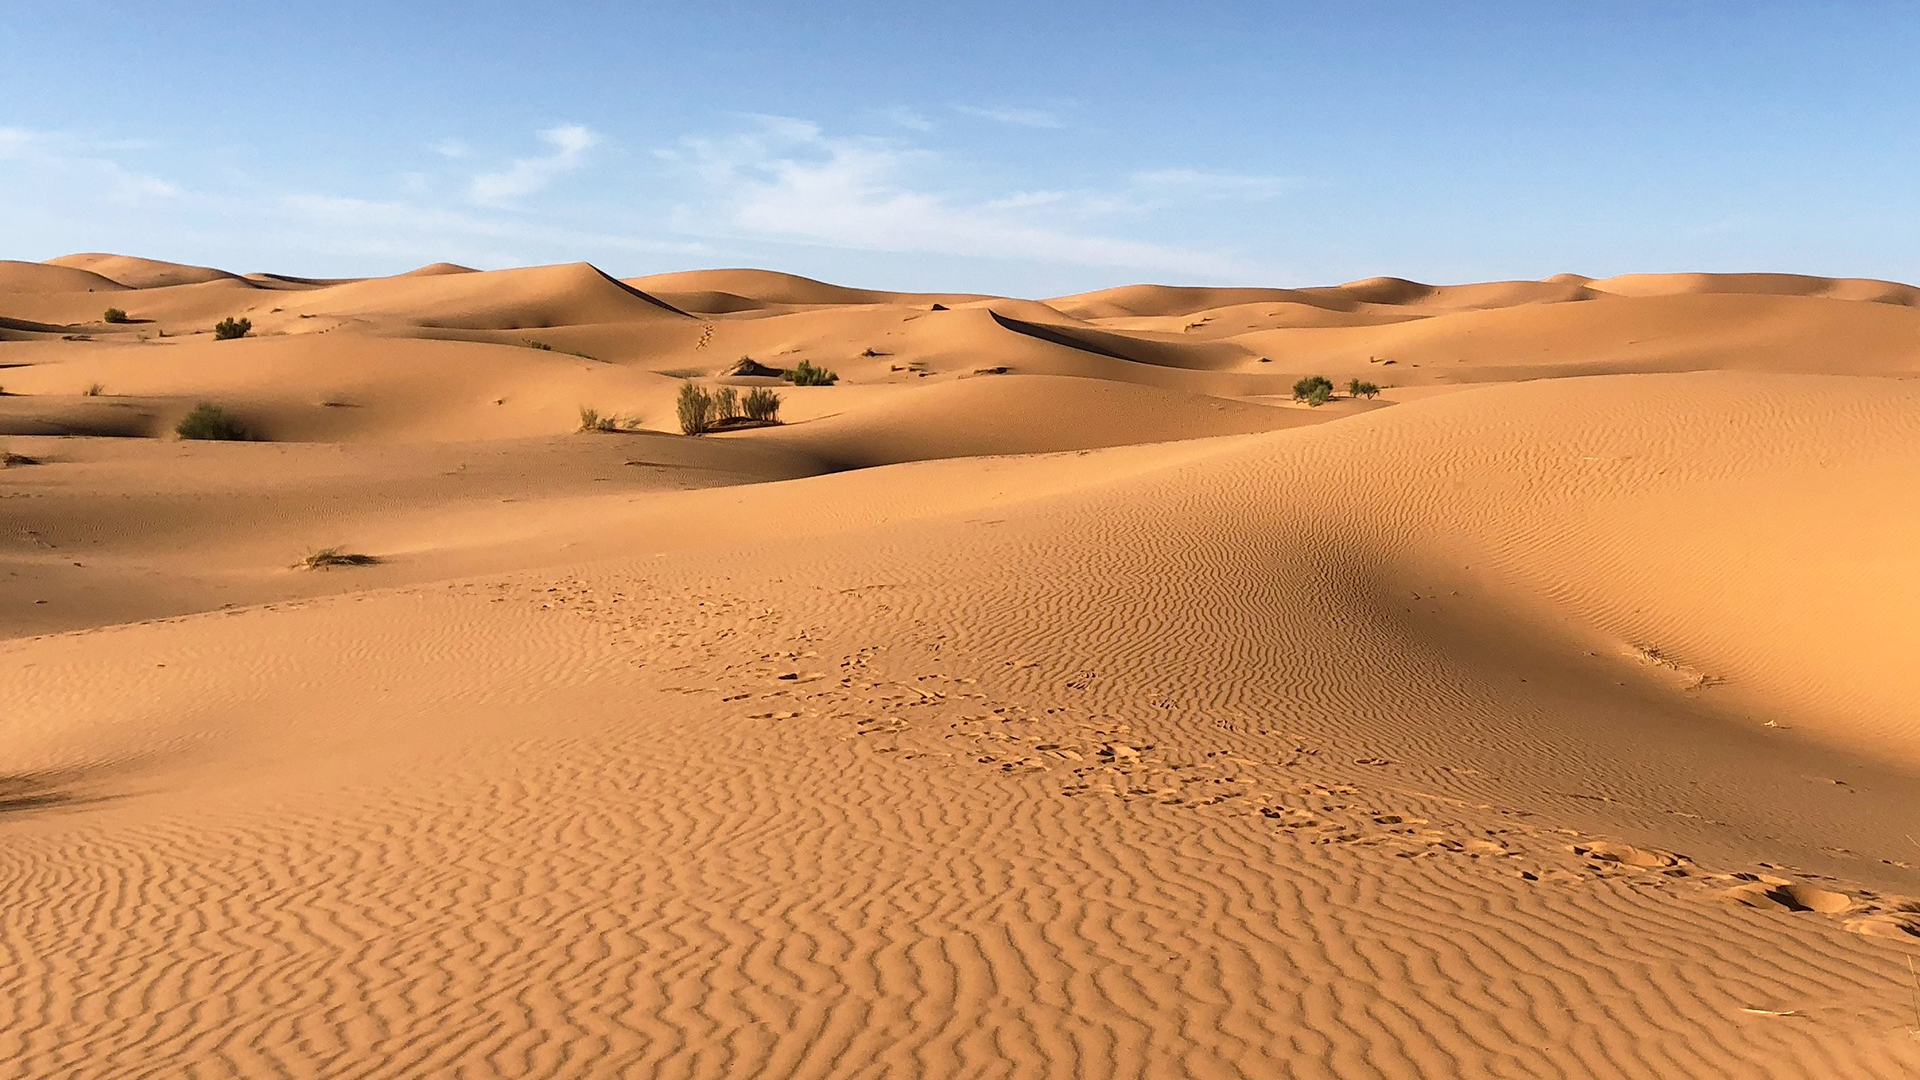 Sahara desert. Virtual background to use on Zoom, Microsoft Teams, Skype, Google Meet, WebEx or any other compatible app.